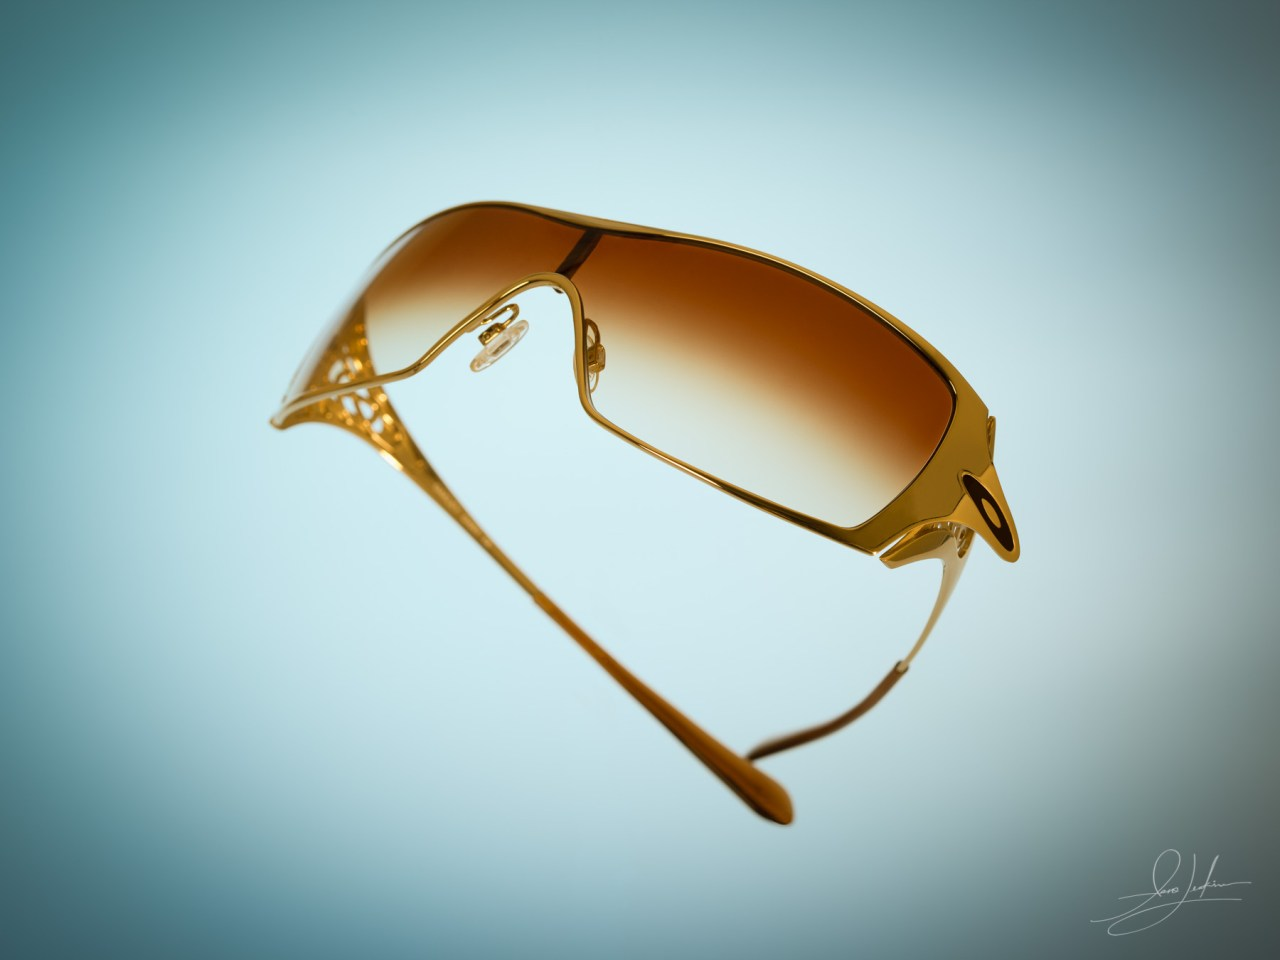 A pair of very stylish gold sunglasses